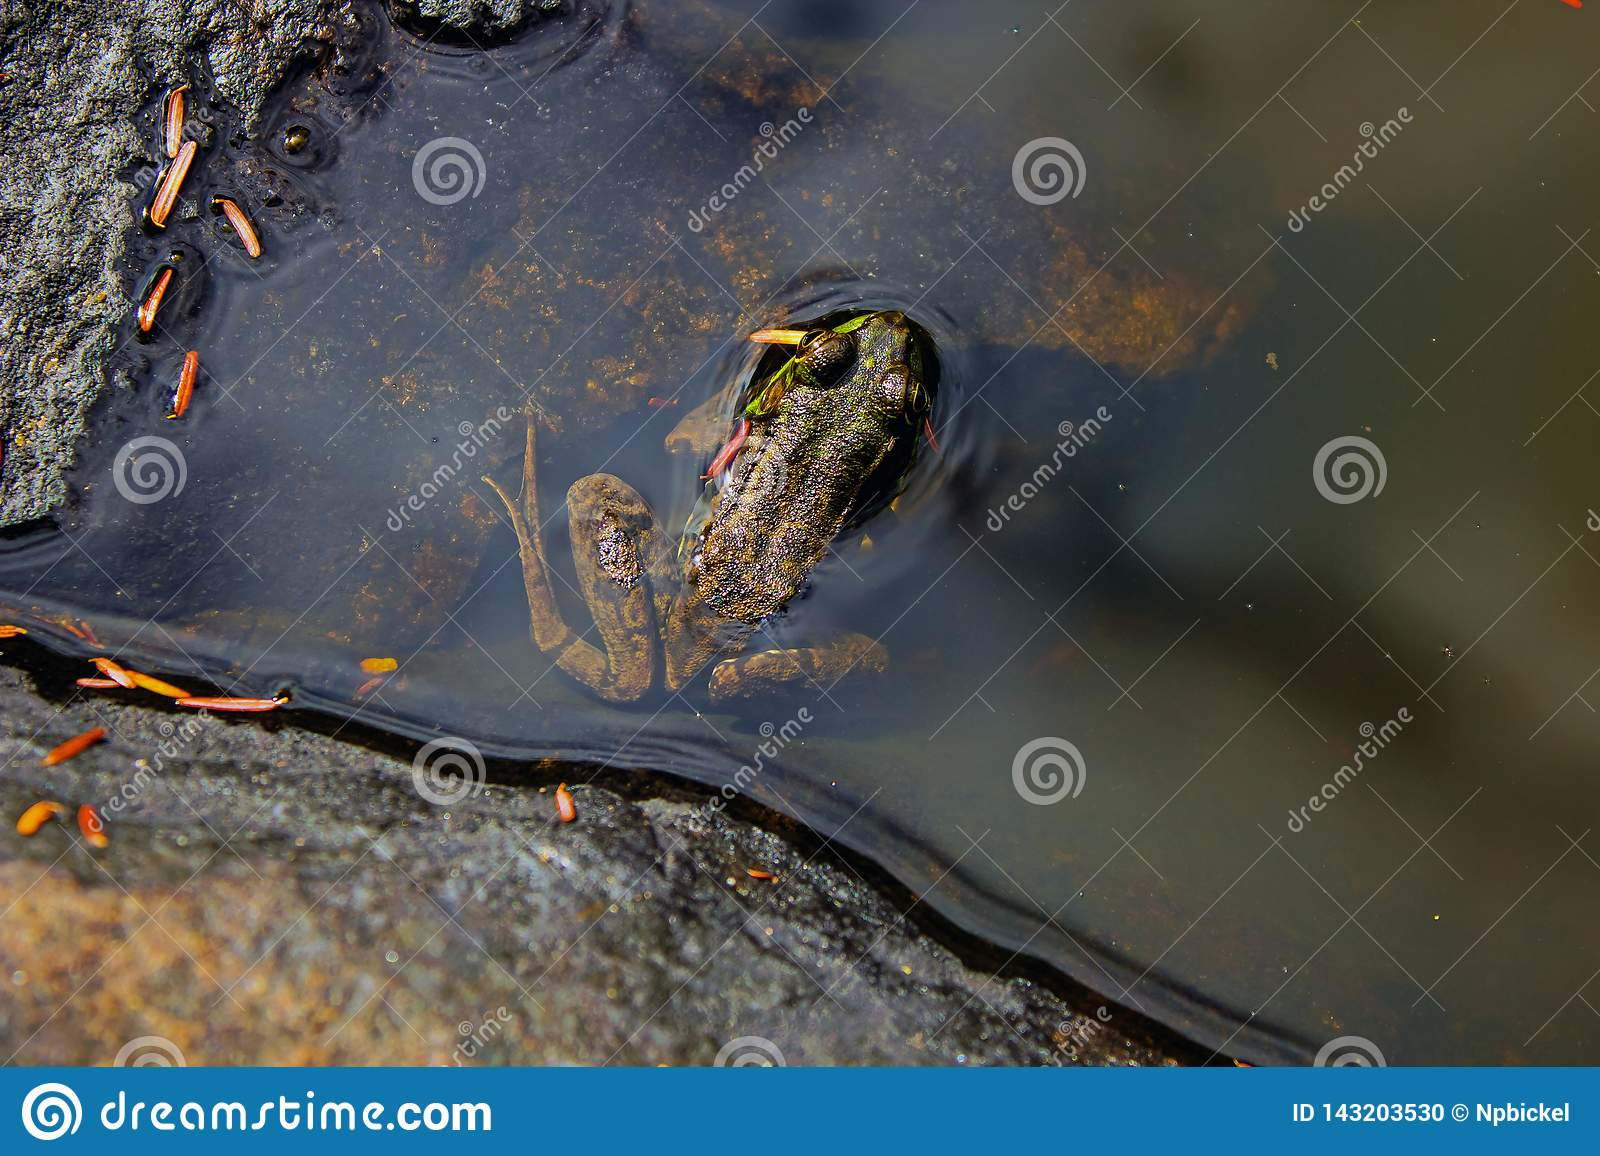 Frog in an Adirondack Pond Centered in Frame